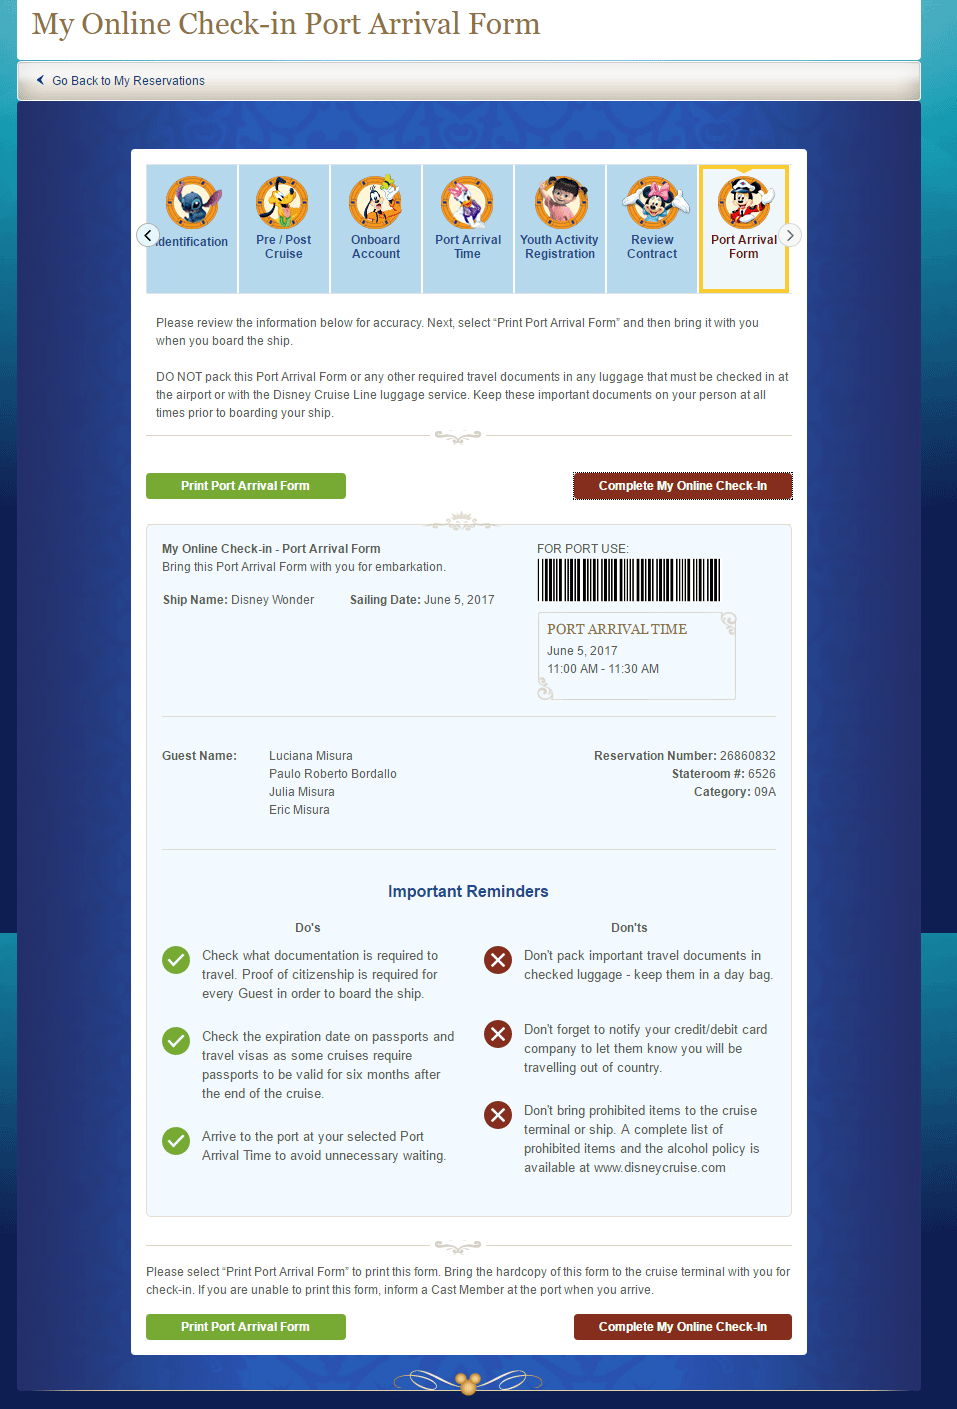 check in do cruzeiro Disney: imprima o Port Arrival Form